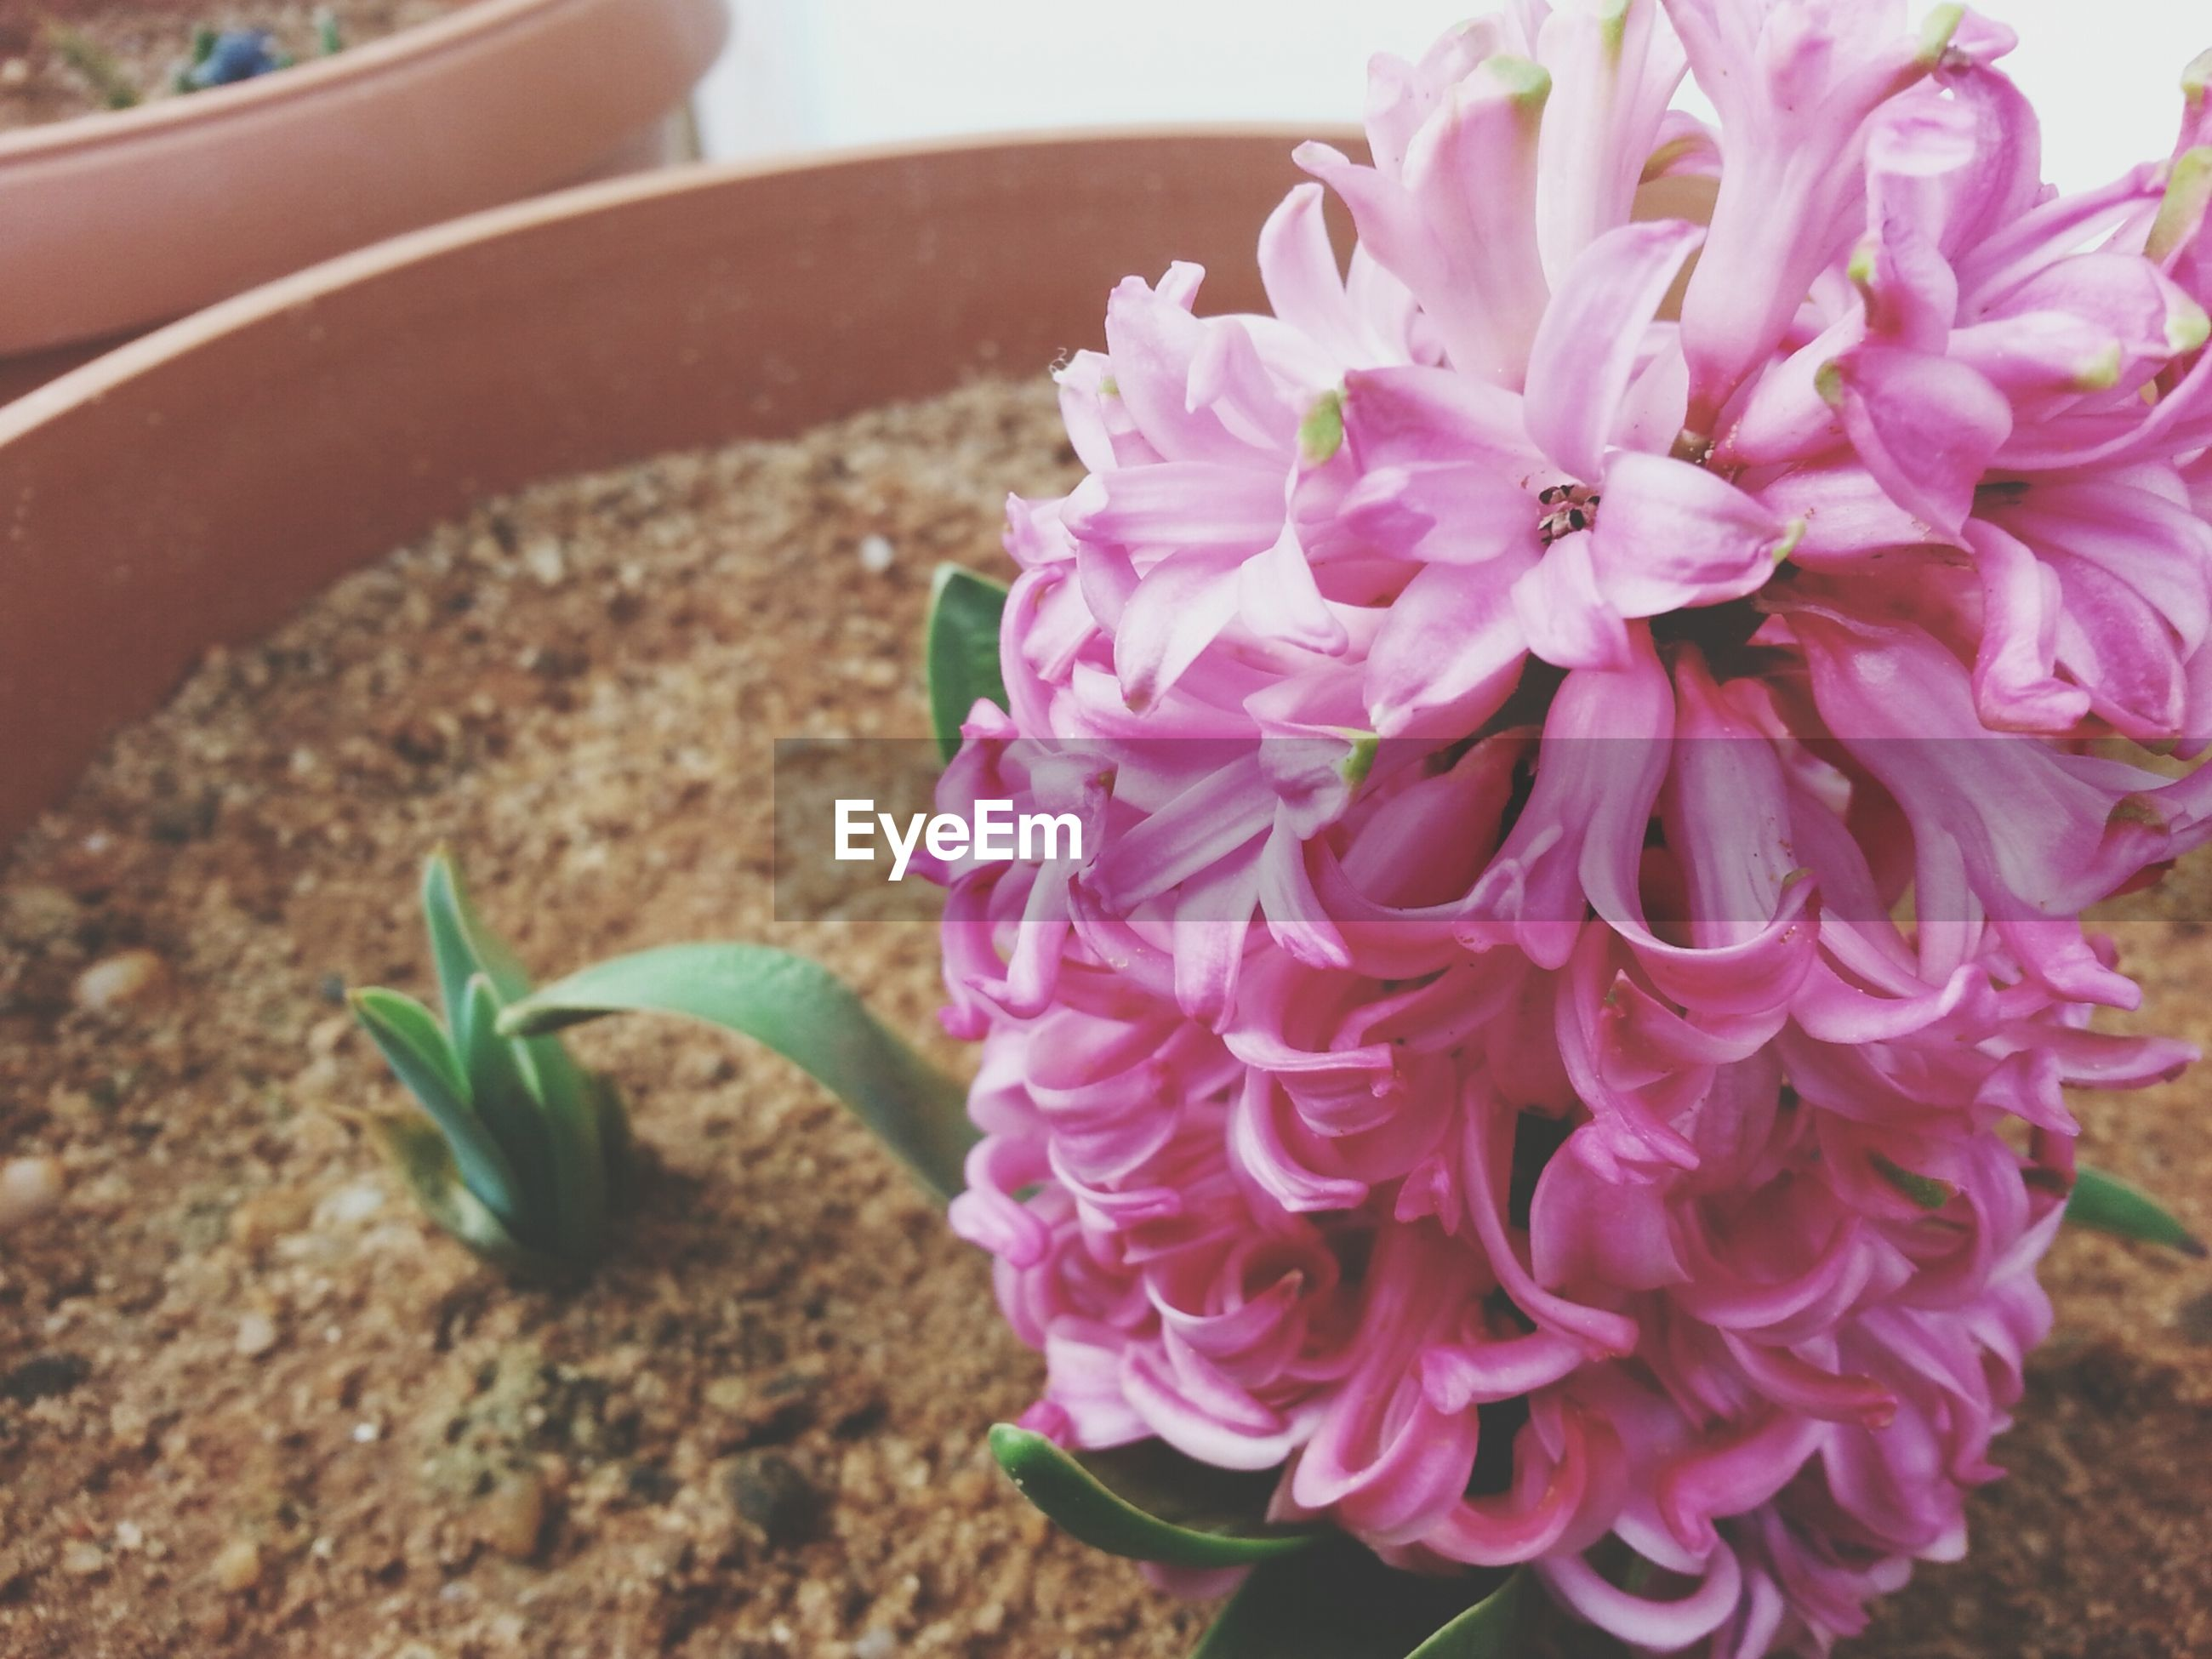 flower, freshness, fragility, petal, close-up, pink color, flower head, growth, beauty in nature, focus on foreground, plant, nature, blooming, potted plant, no people, day, high angle view, outdoors, in bloom, park - man made space